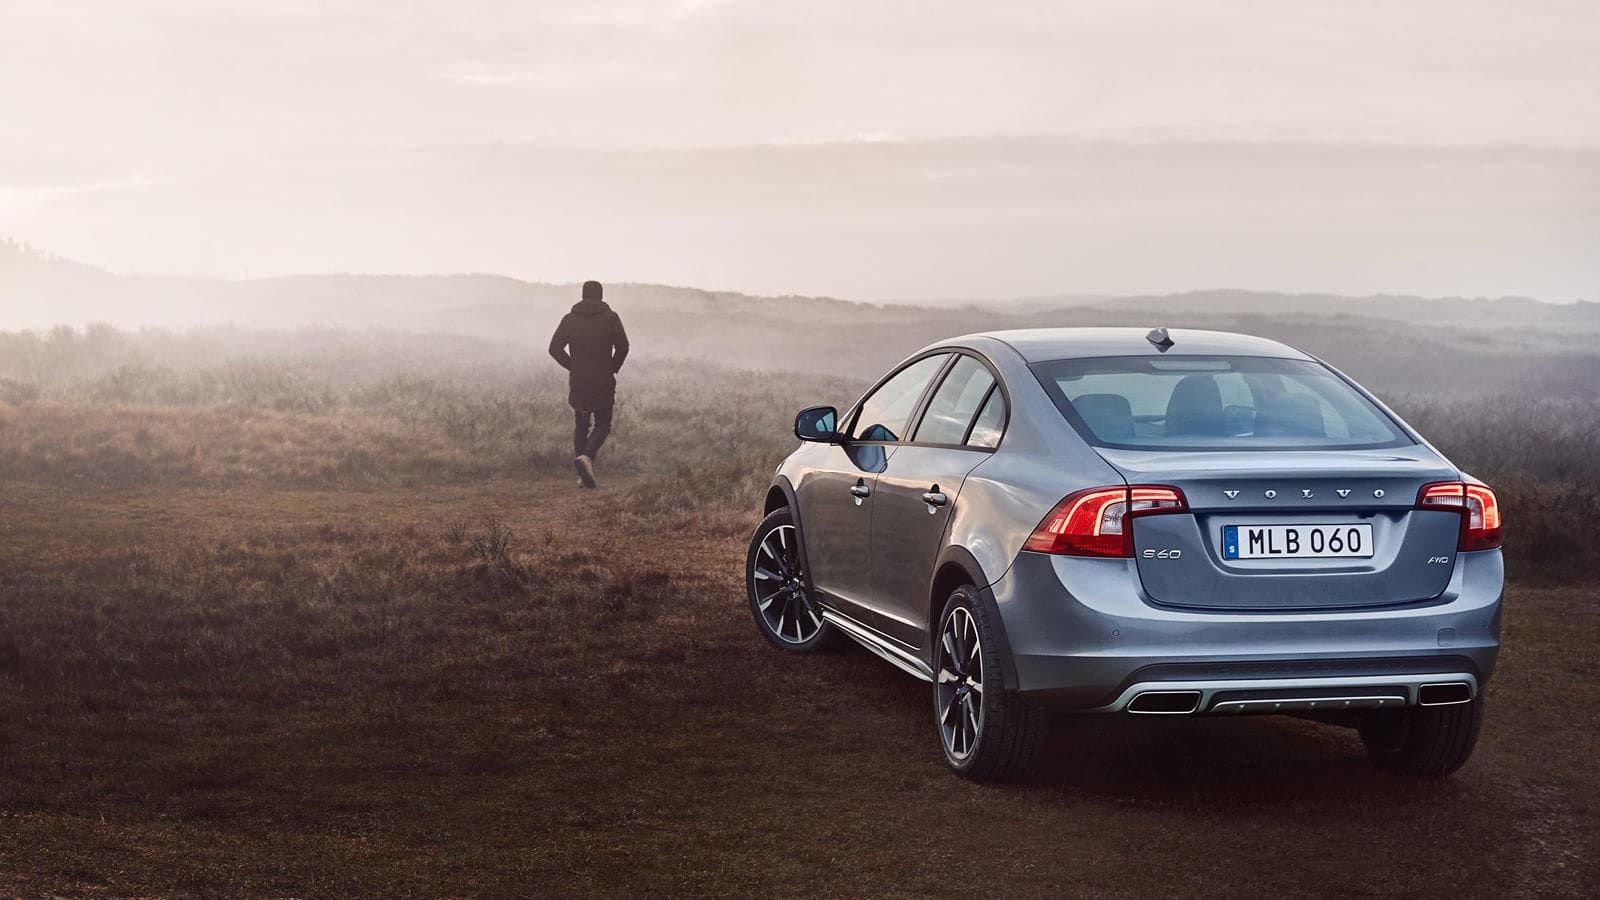 volvo s60 crosscountry exterior left back patrik johall